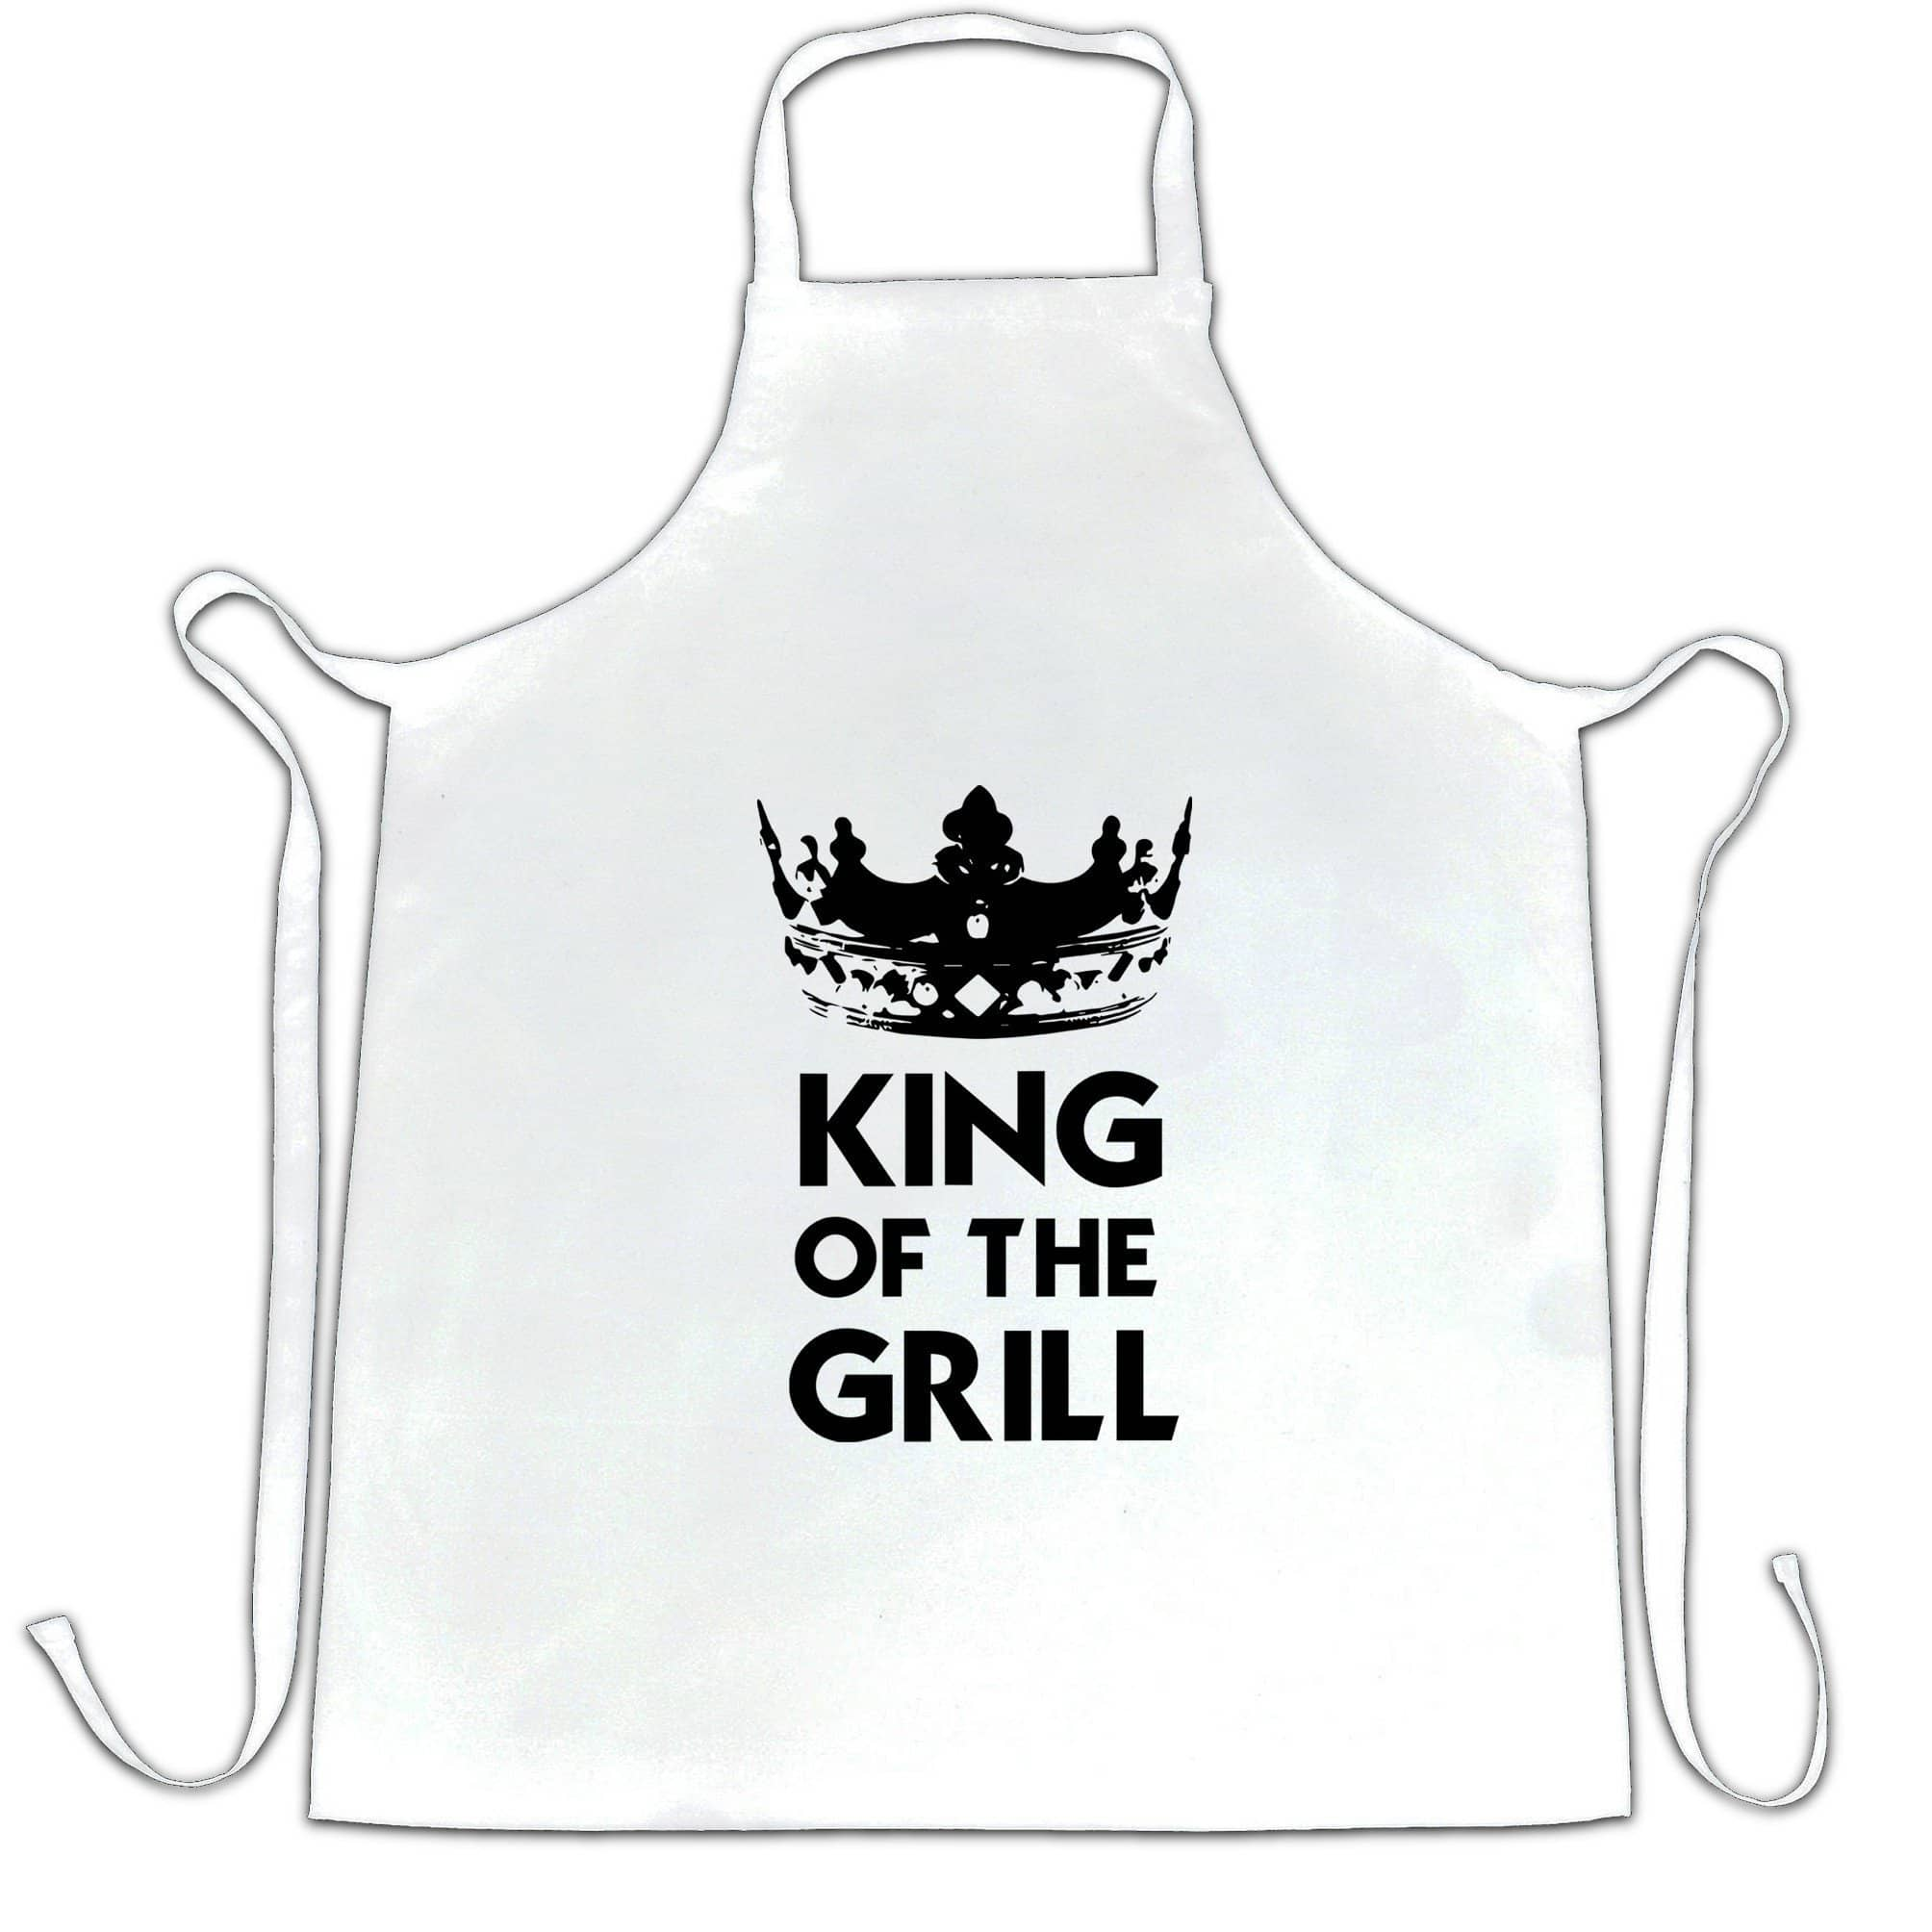 Novelty Cooking Chef's Apron King Of The Grill Slogan